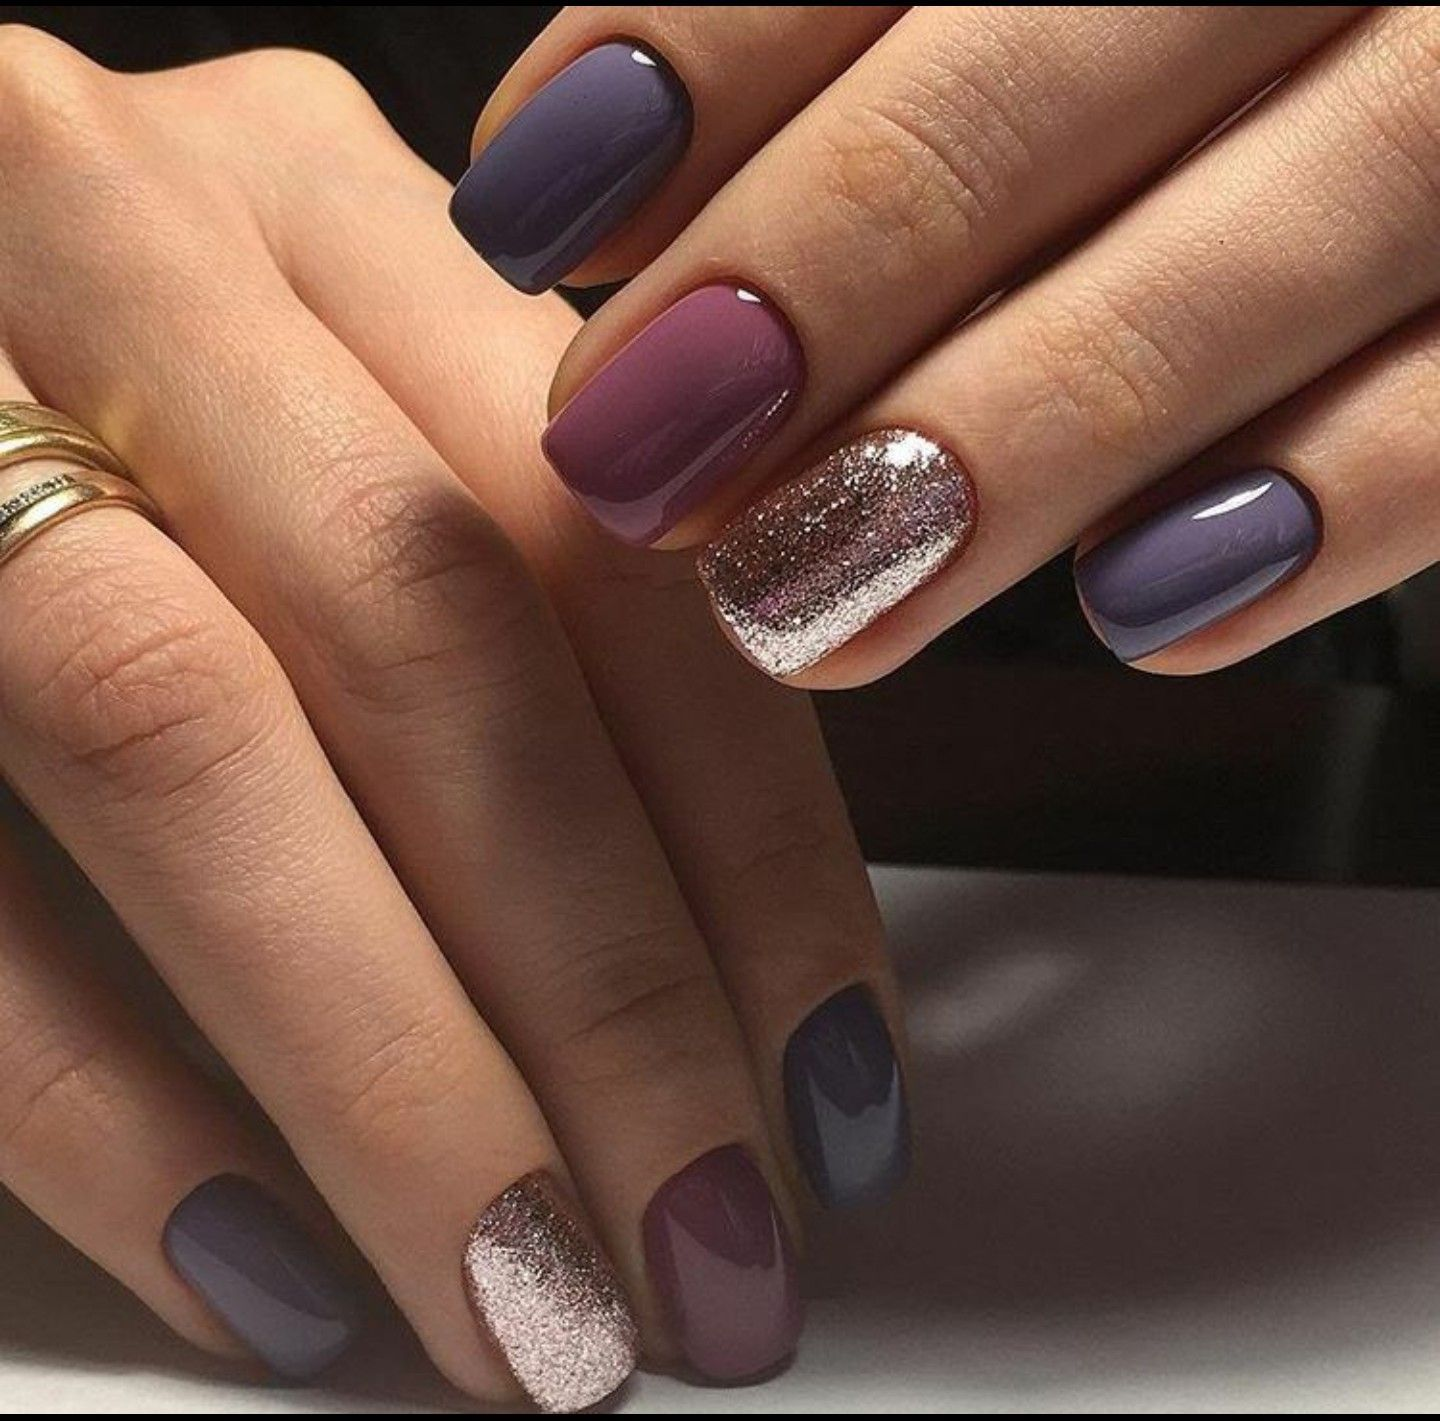 Coole Gelnägel Beauty Nails Nageldesign Zum Selbermachen Nagellack Gelnägel